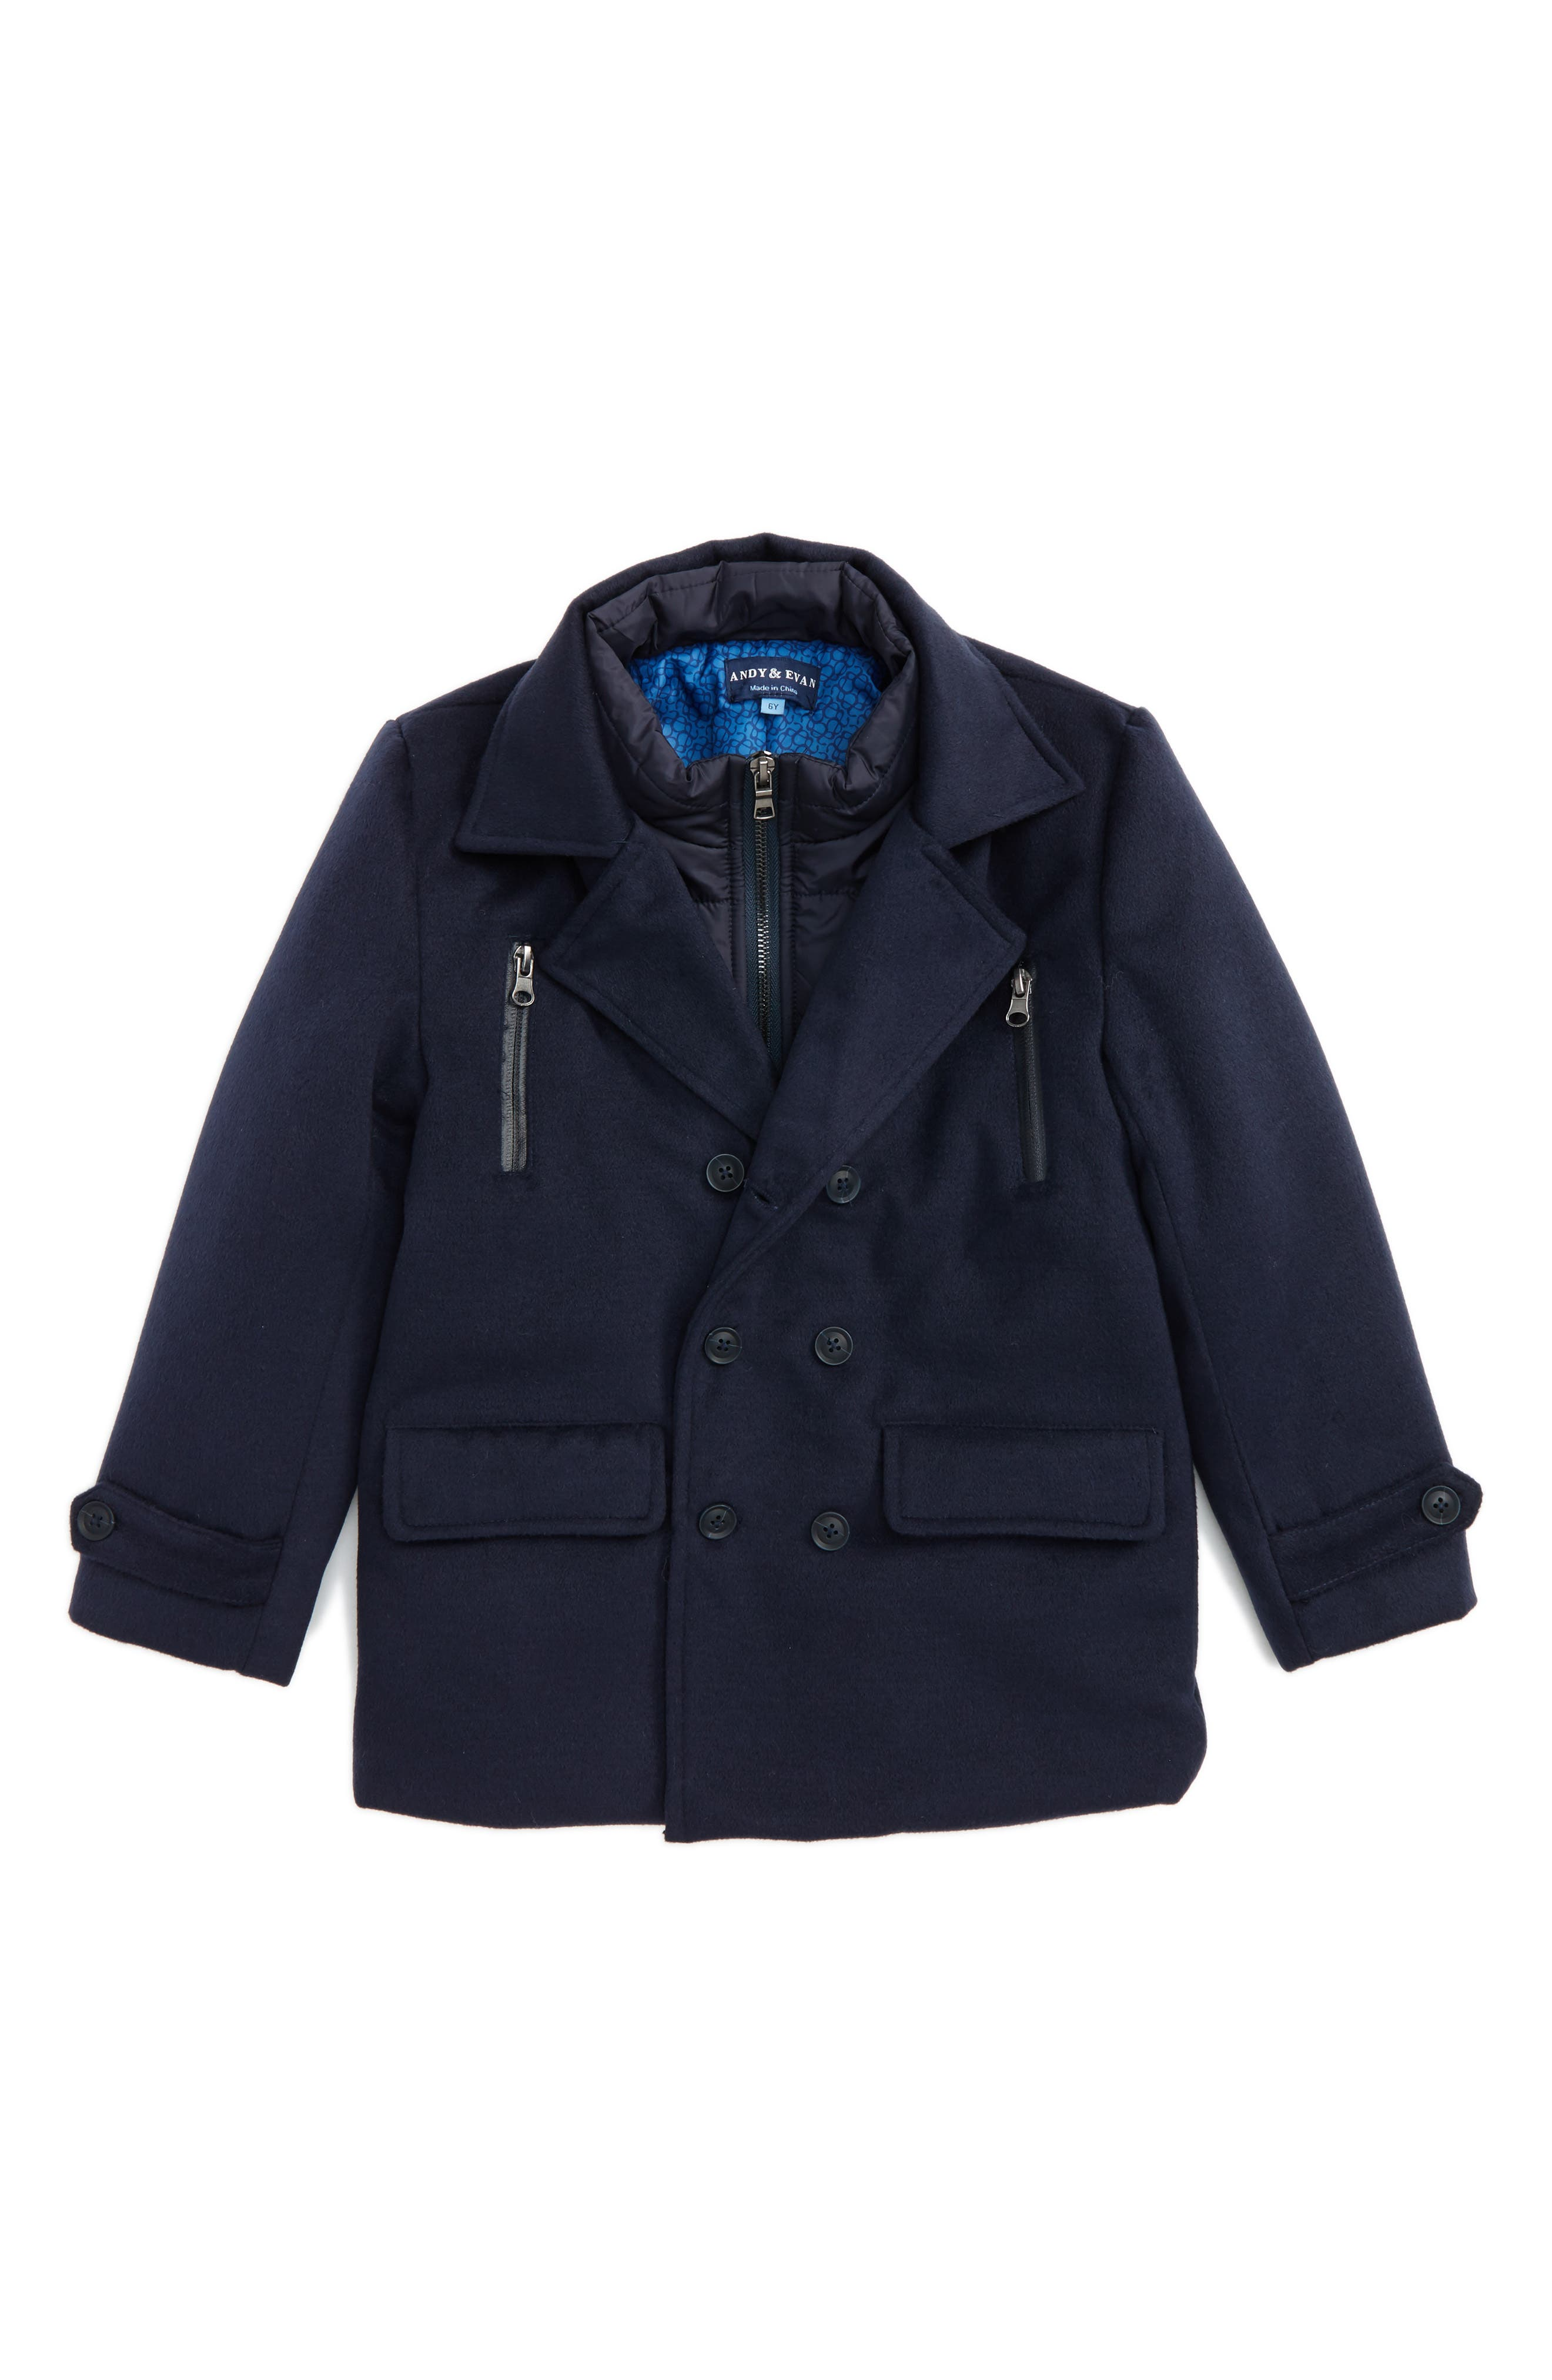 Double Breasted Peacoat,                             Main thumbnail 1, color,                             411